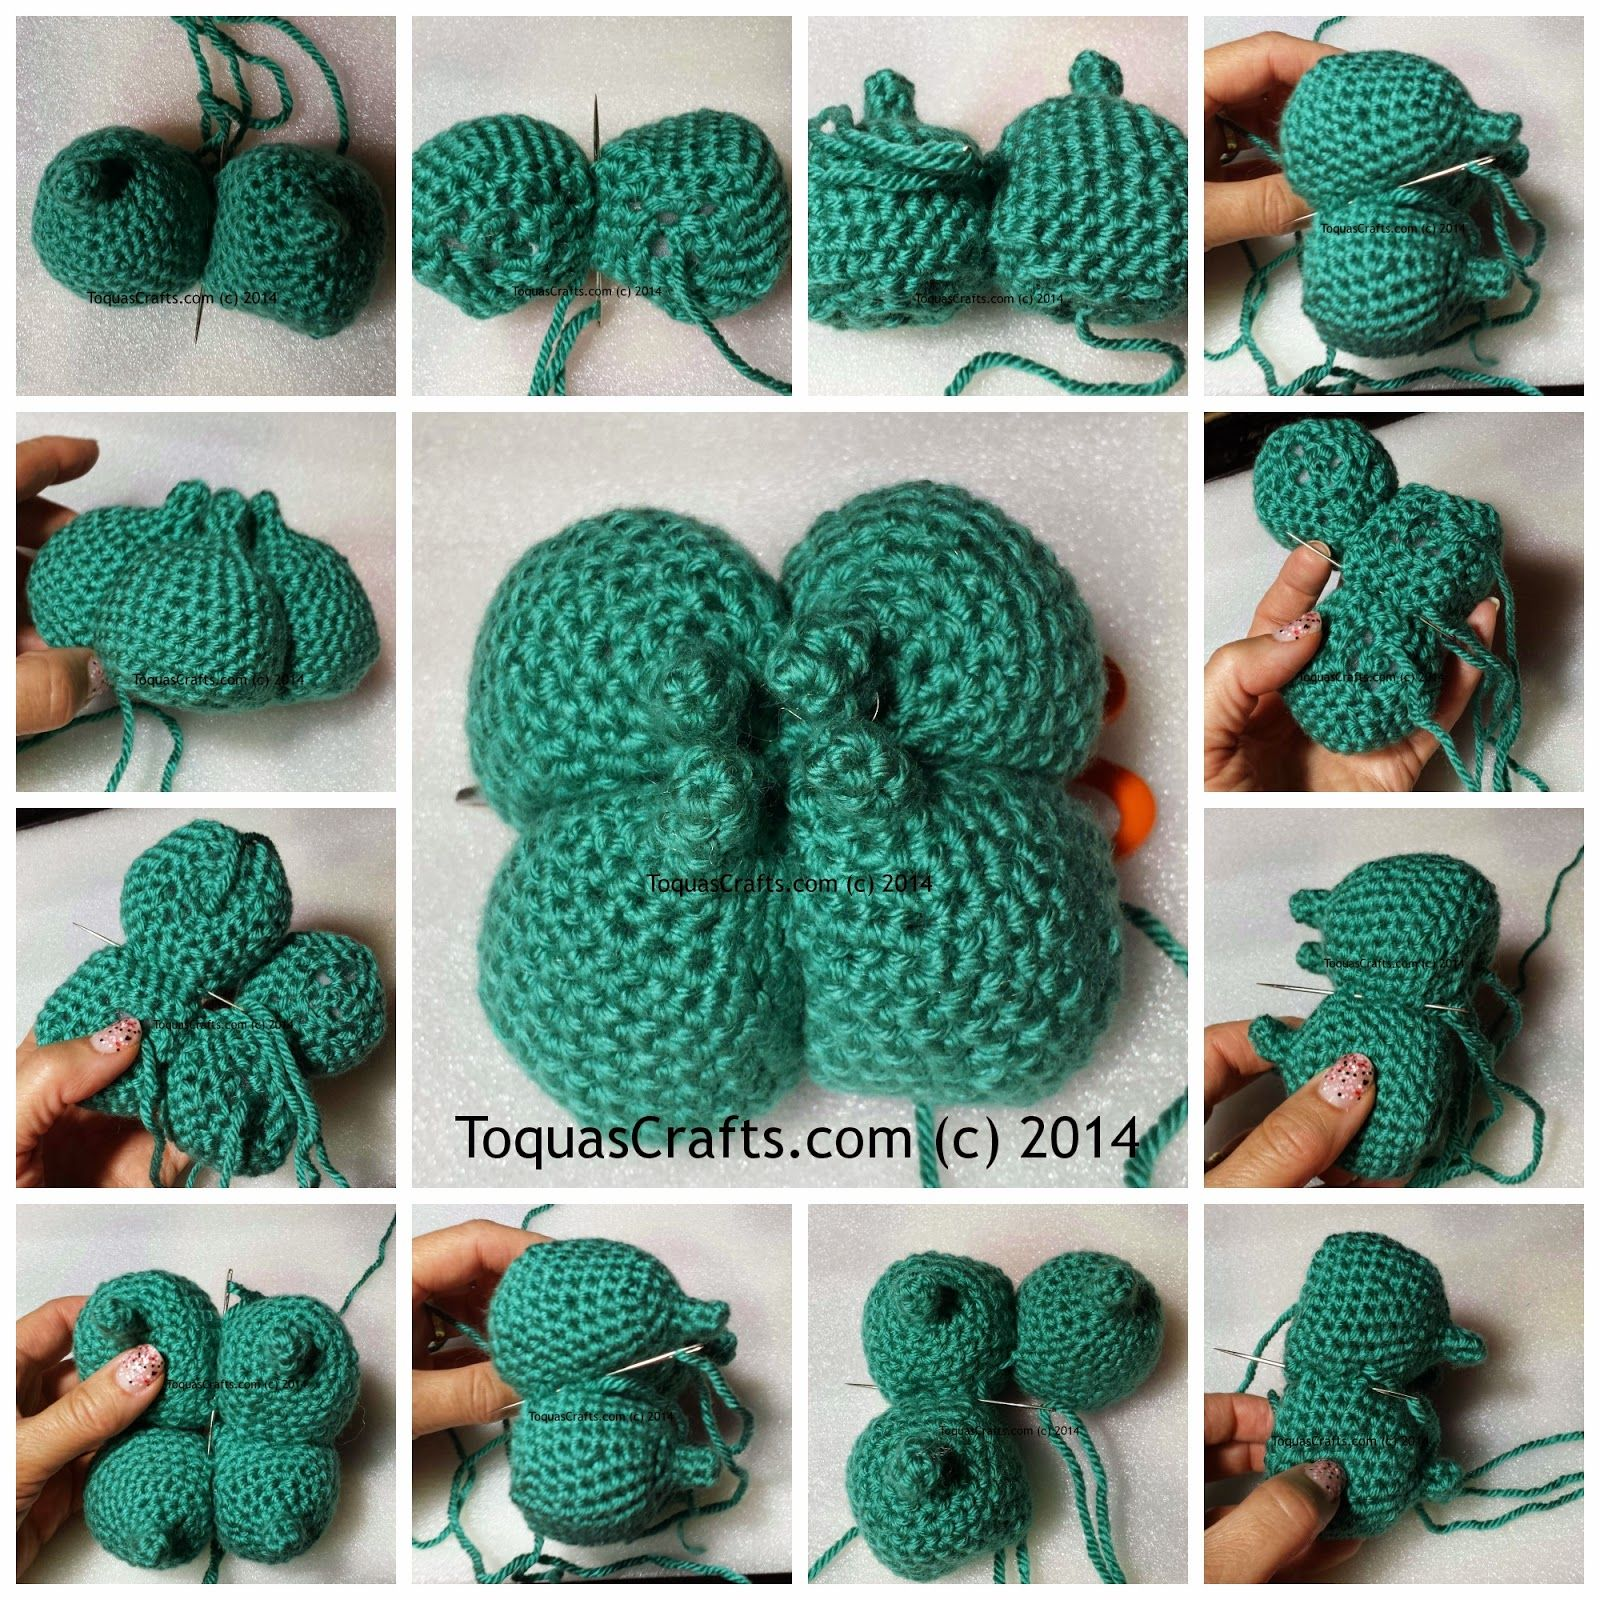 Toqua\'s Crafts: Bulbasaur (Pokémon) Free Pattern and Tutorial ...